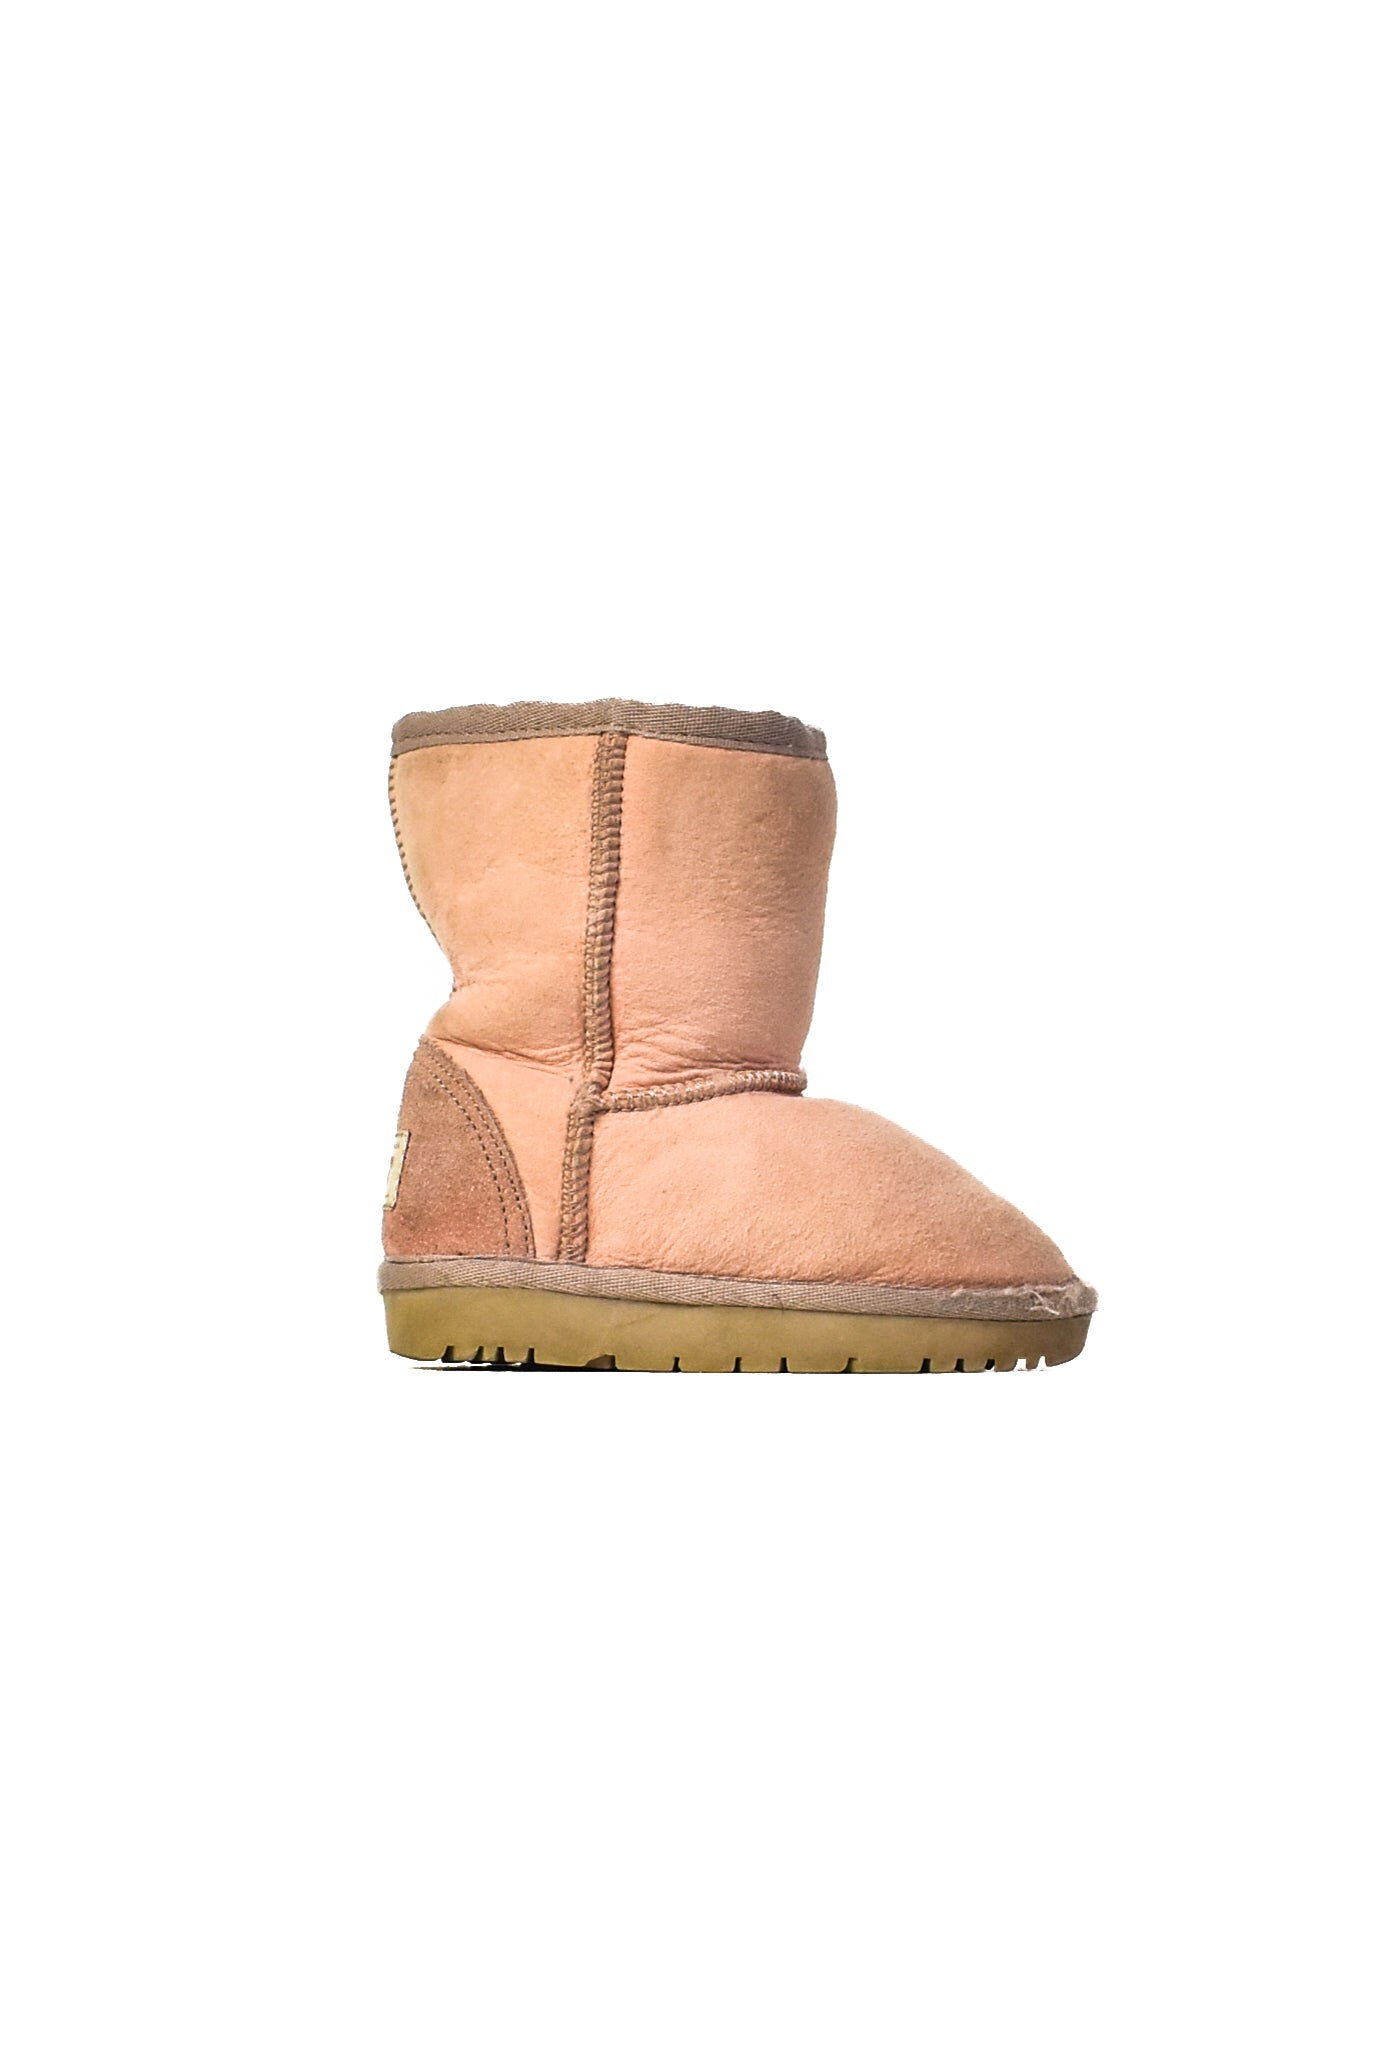 10013392 UGG Kids ~ Shoes 2-3T (EU 25) at Retykle